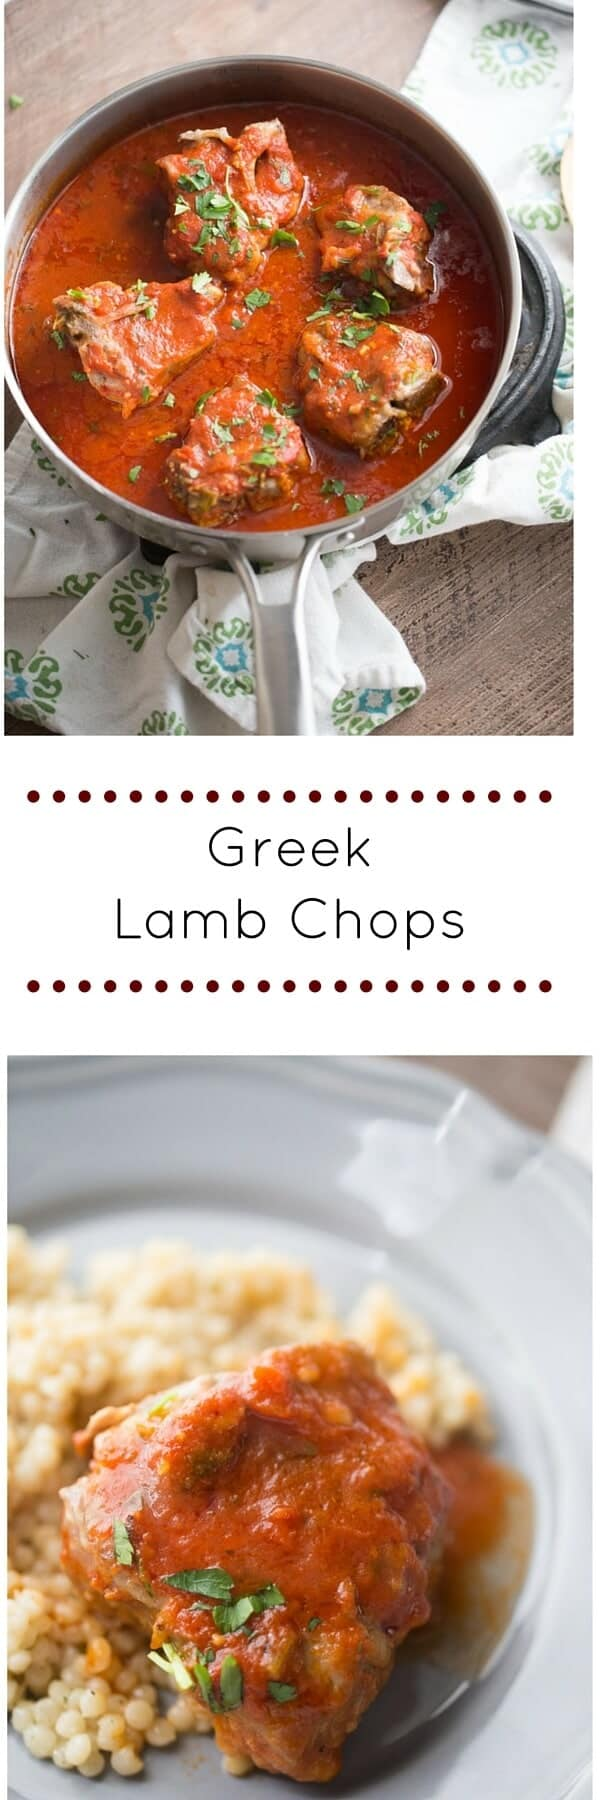 Perfectly seasoned lamb chops are lightly breaded and then slowly simmered in the most flavorful tomato sauce! This Greek style recipe had a deep, rich flavorful that is aboslutlely amazing!